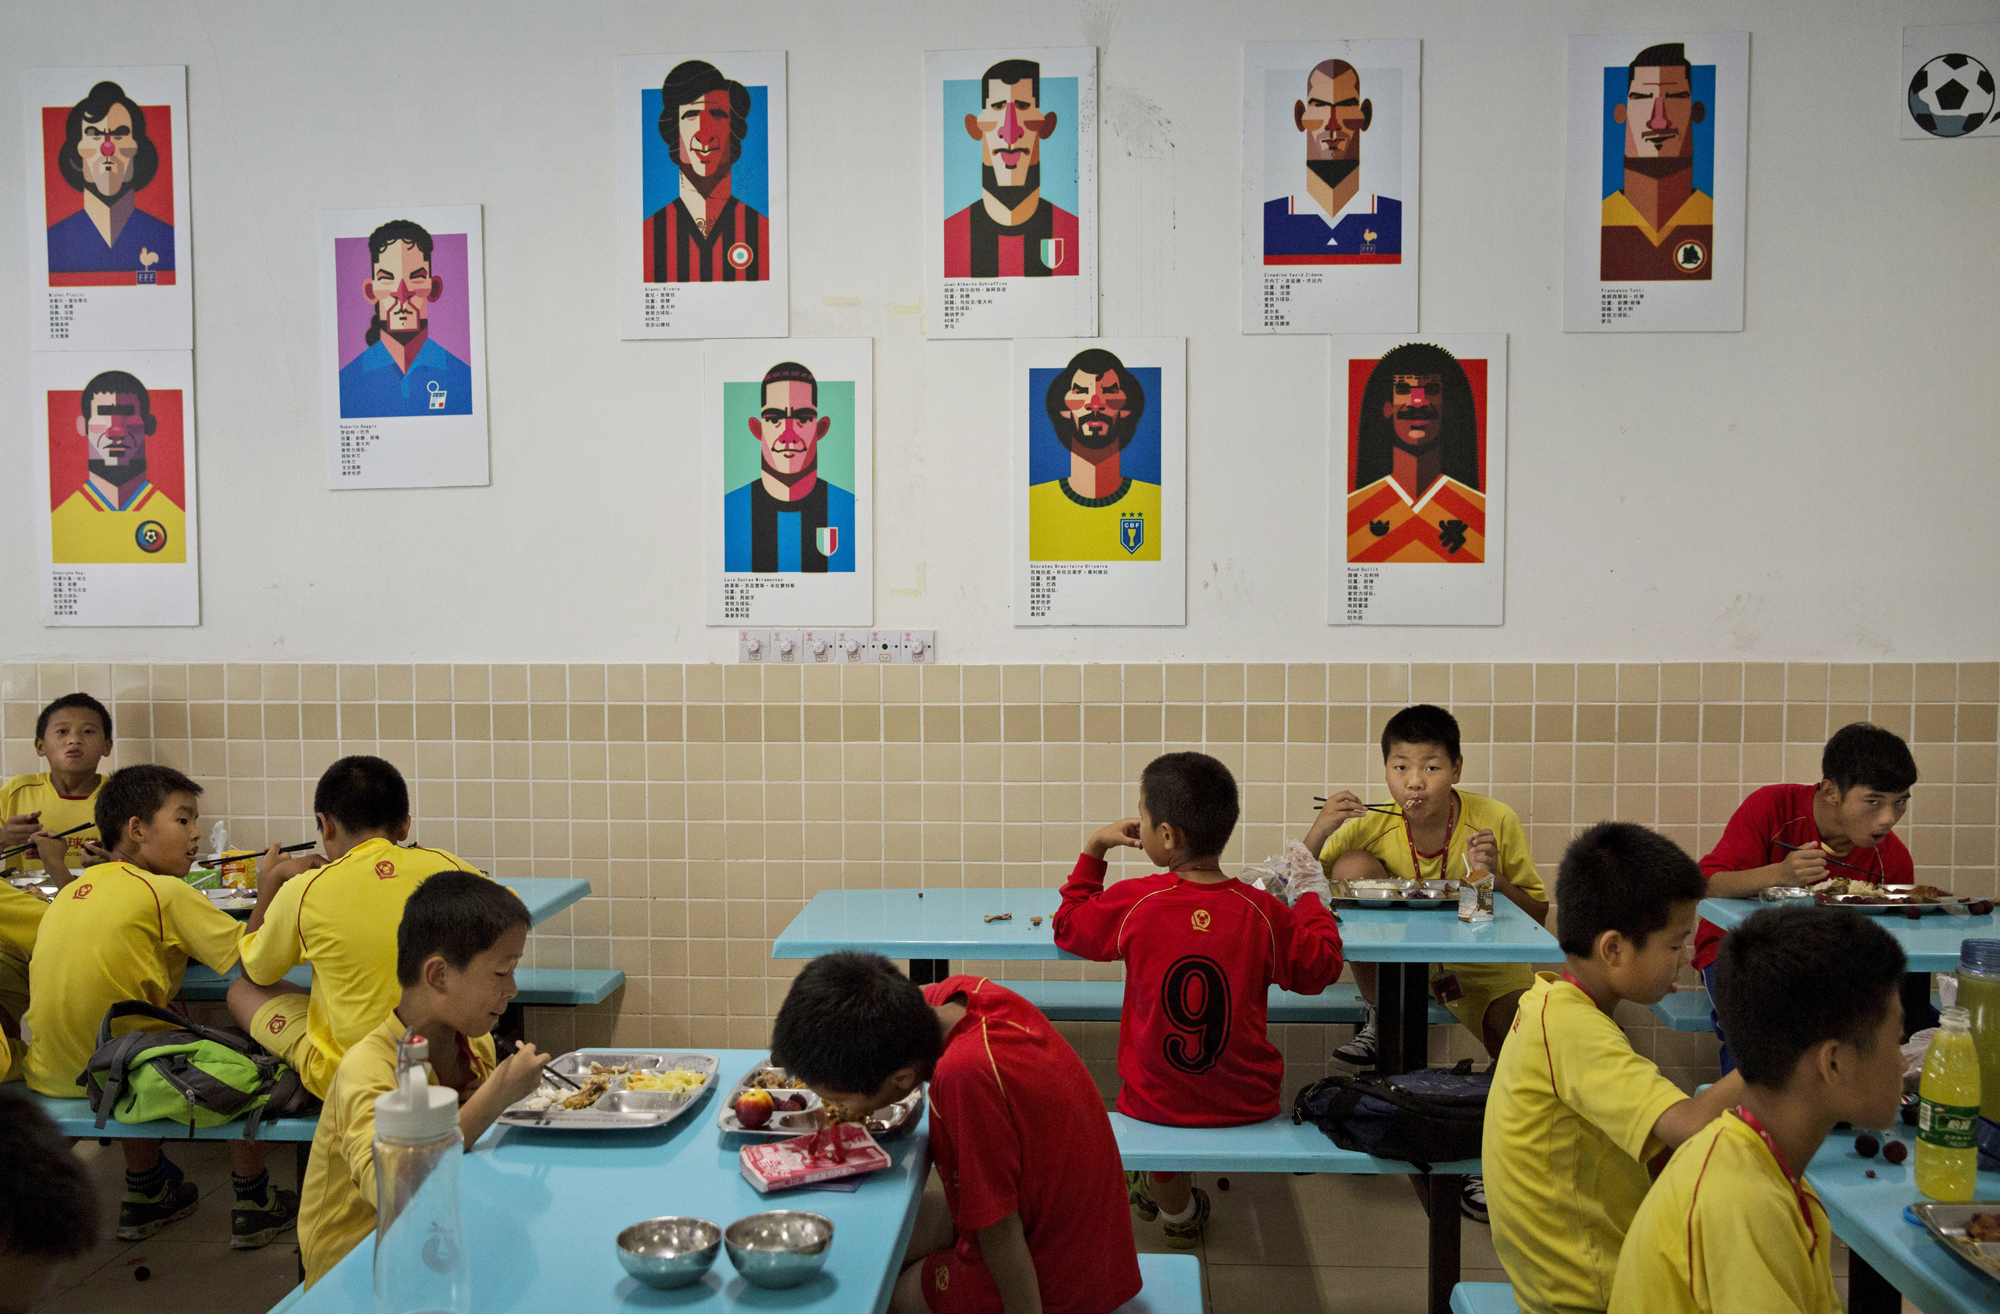 Students eat lunch under caricatures of famous soccer players in the cafeteria.